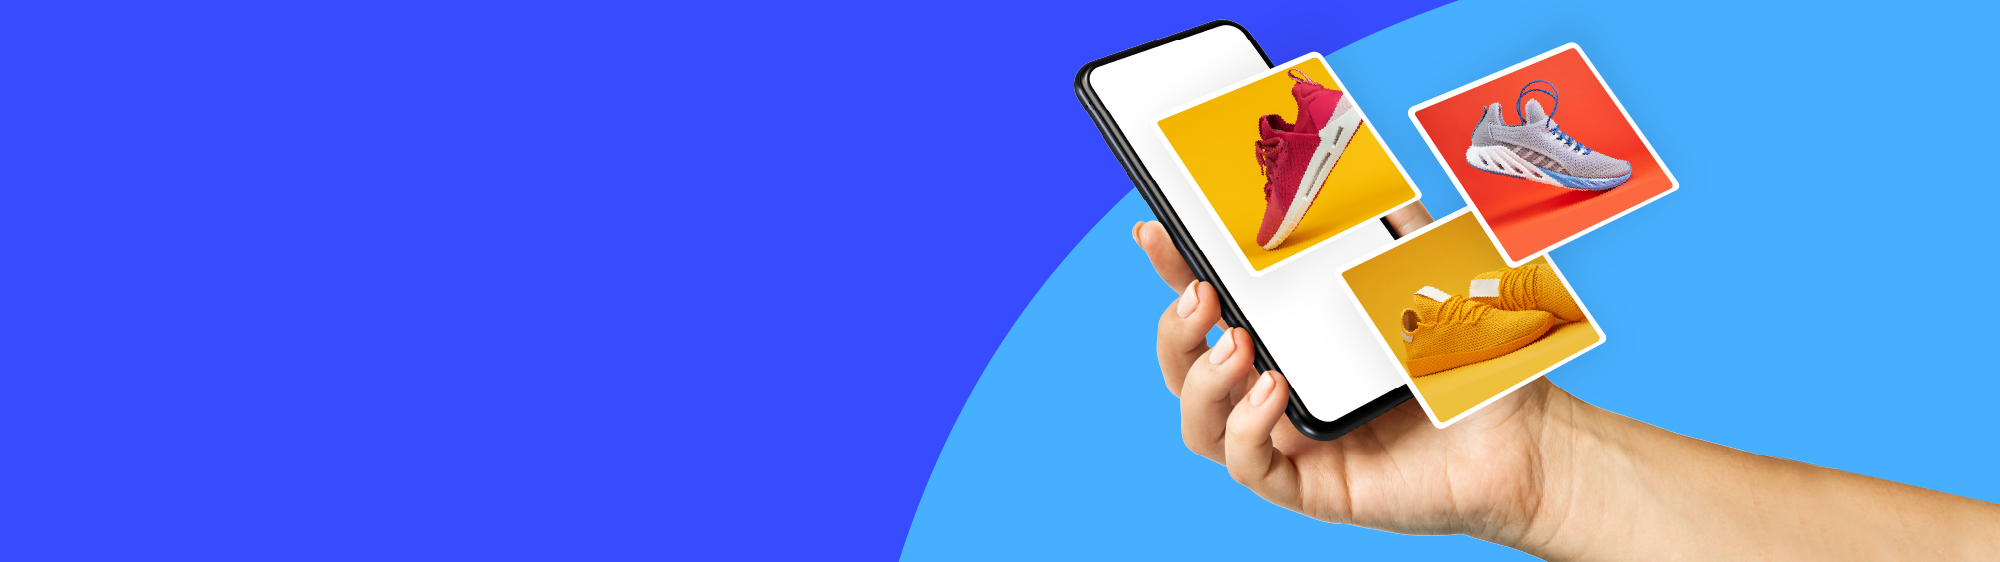 Hand holding a mobile phone with fly out images of red, blue, and yellow sneakers